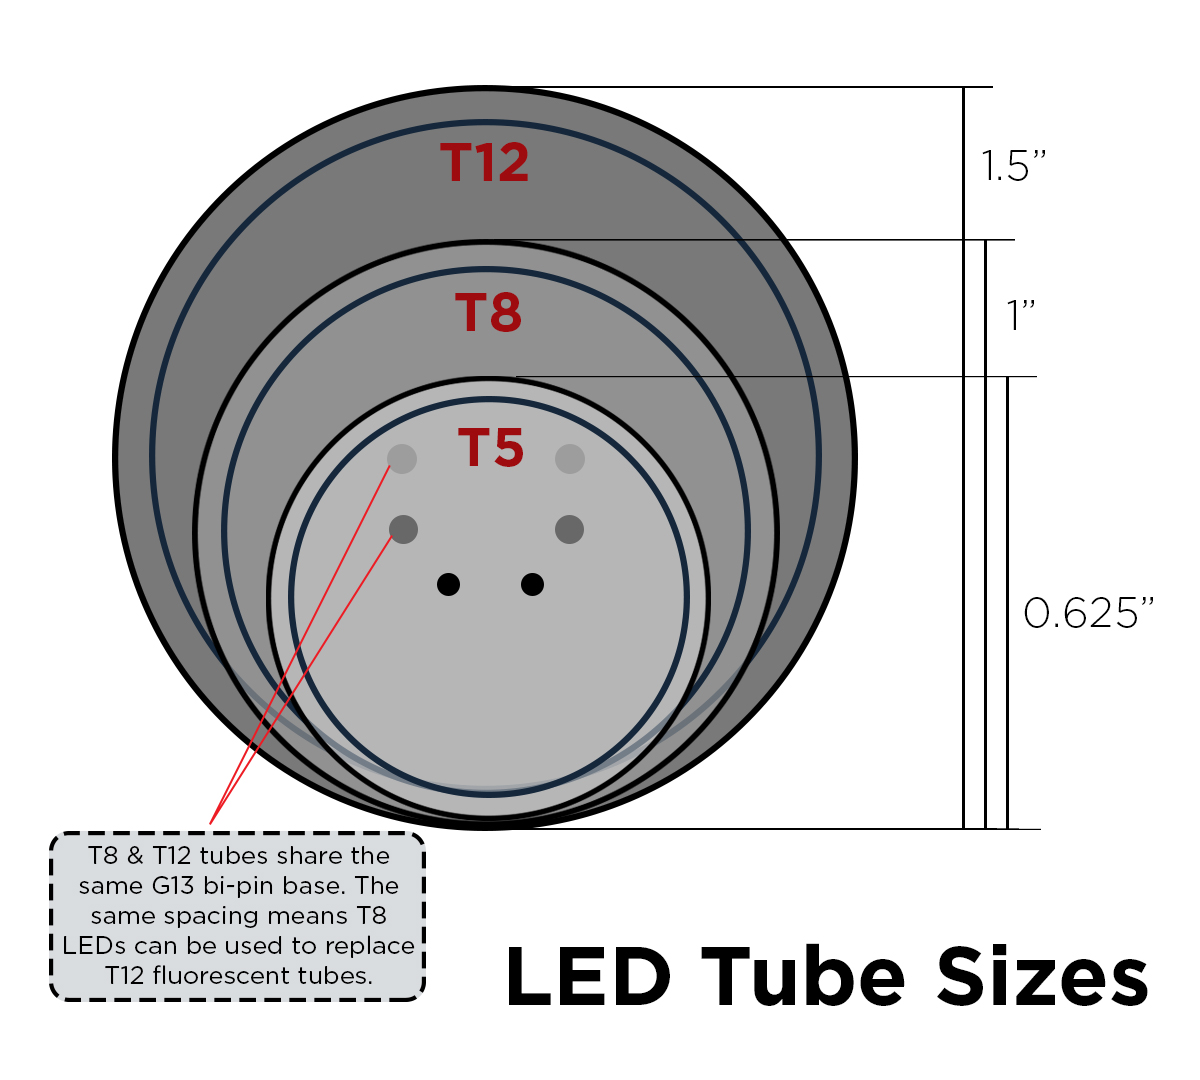 hight resolution of  can use them interchangeably with the same light fixture as long as you double check the milliamp ma requirements of the ballast if one is present